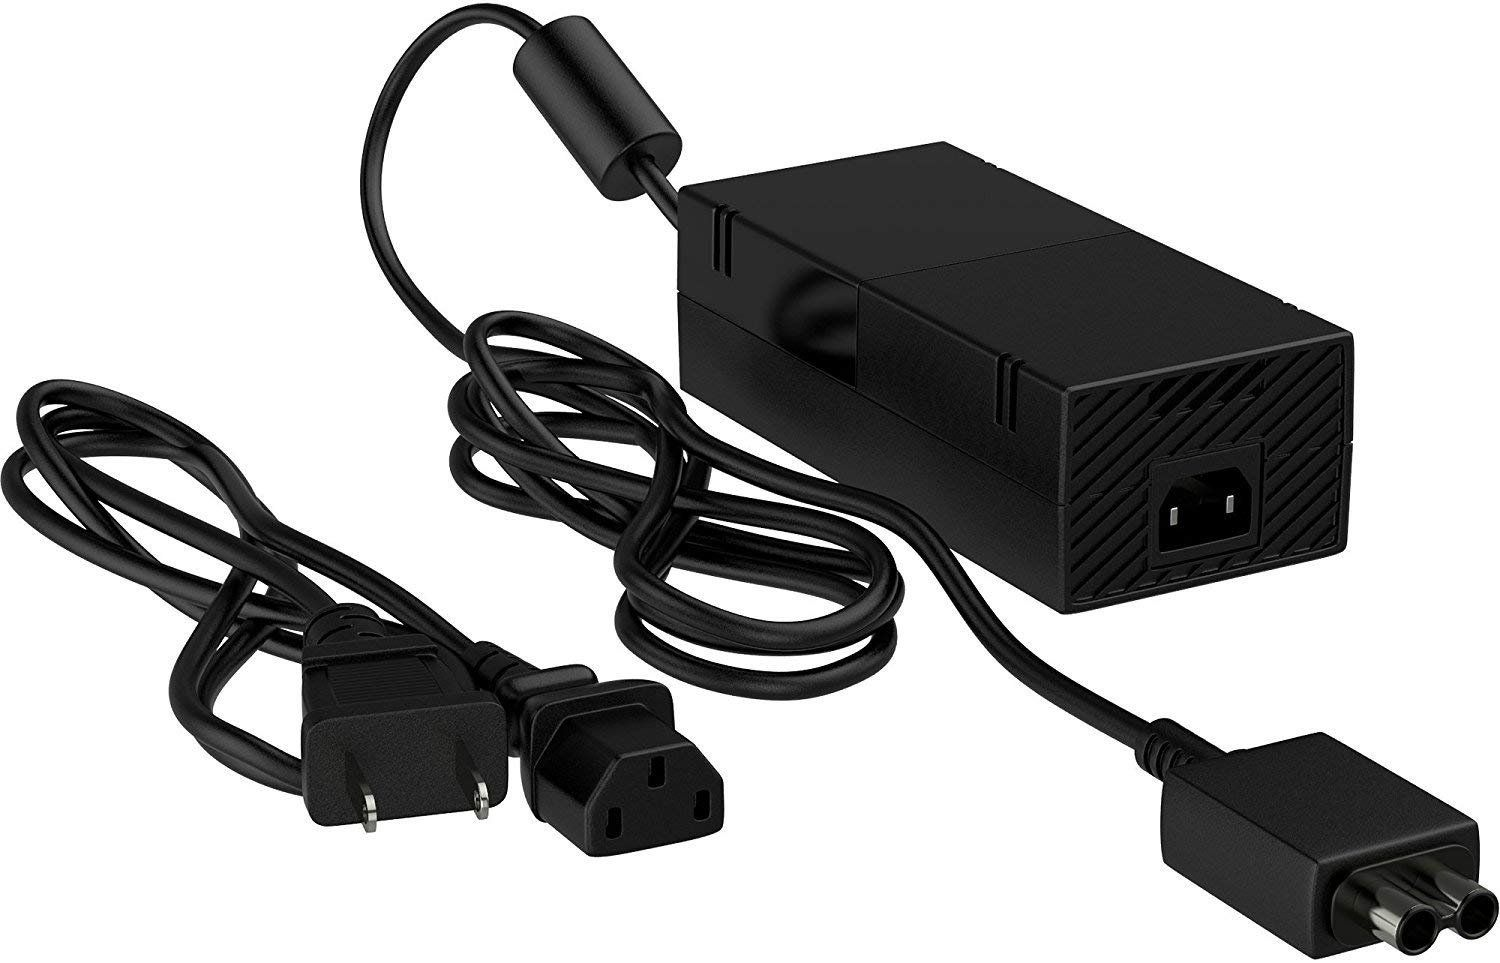 small resolution of ortz xbox one power supply enhanced quiet version ac adapter cord best for charging brick style great charger accessory kit with cable version